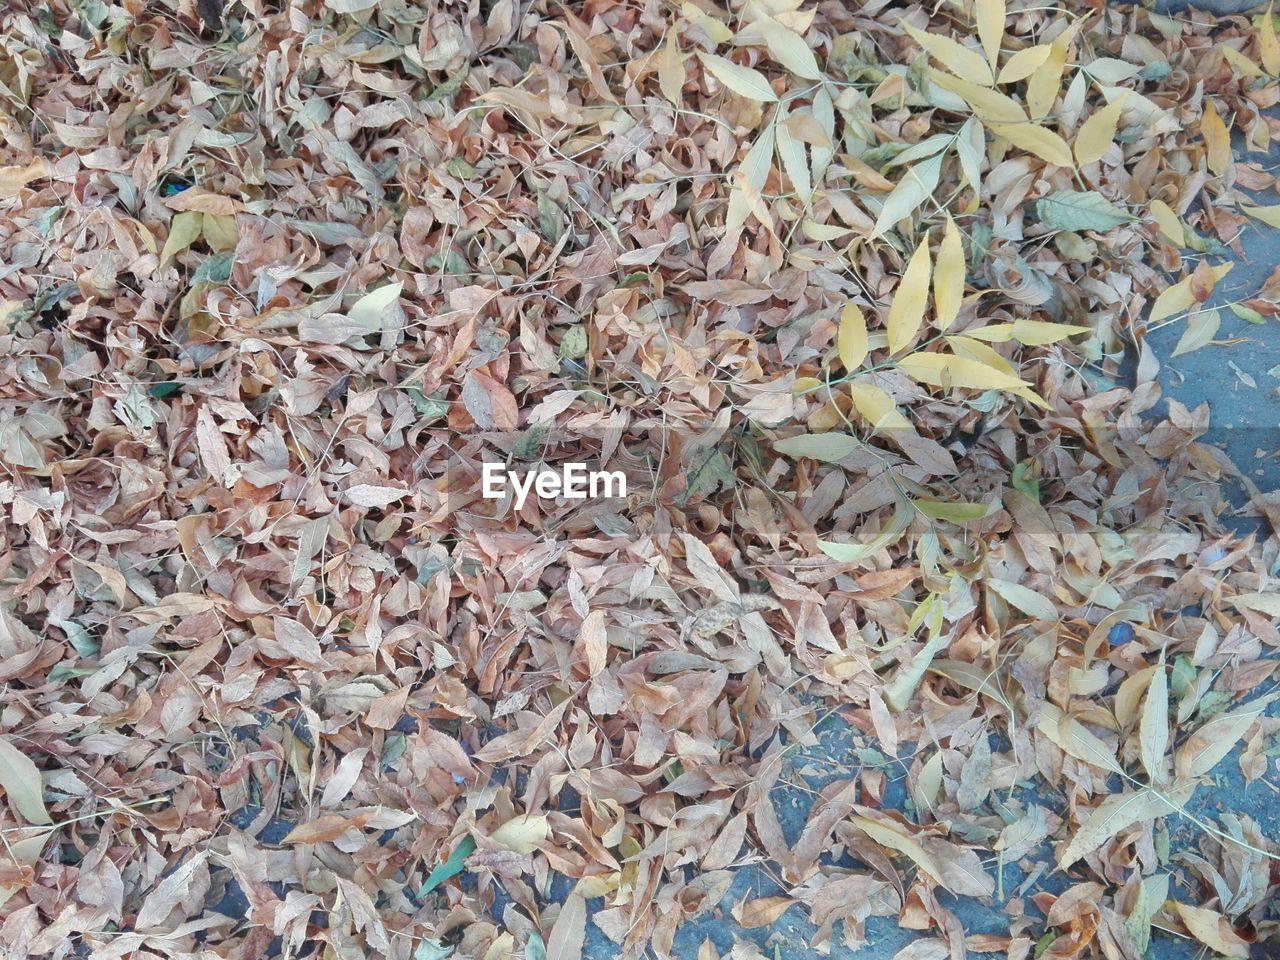 leaf, abundance, large group of objects, full frame, dry, autumn, no people, high angle view, change, close-up, backgrounds, nature, day, indoors